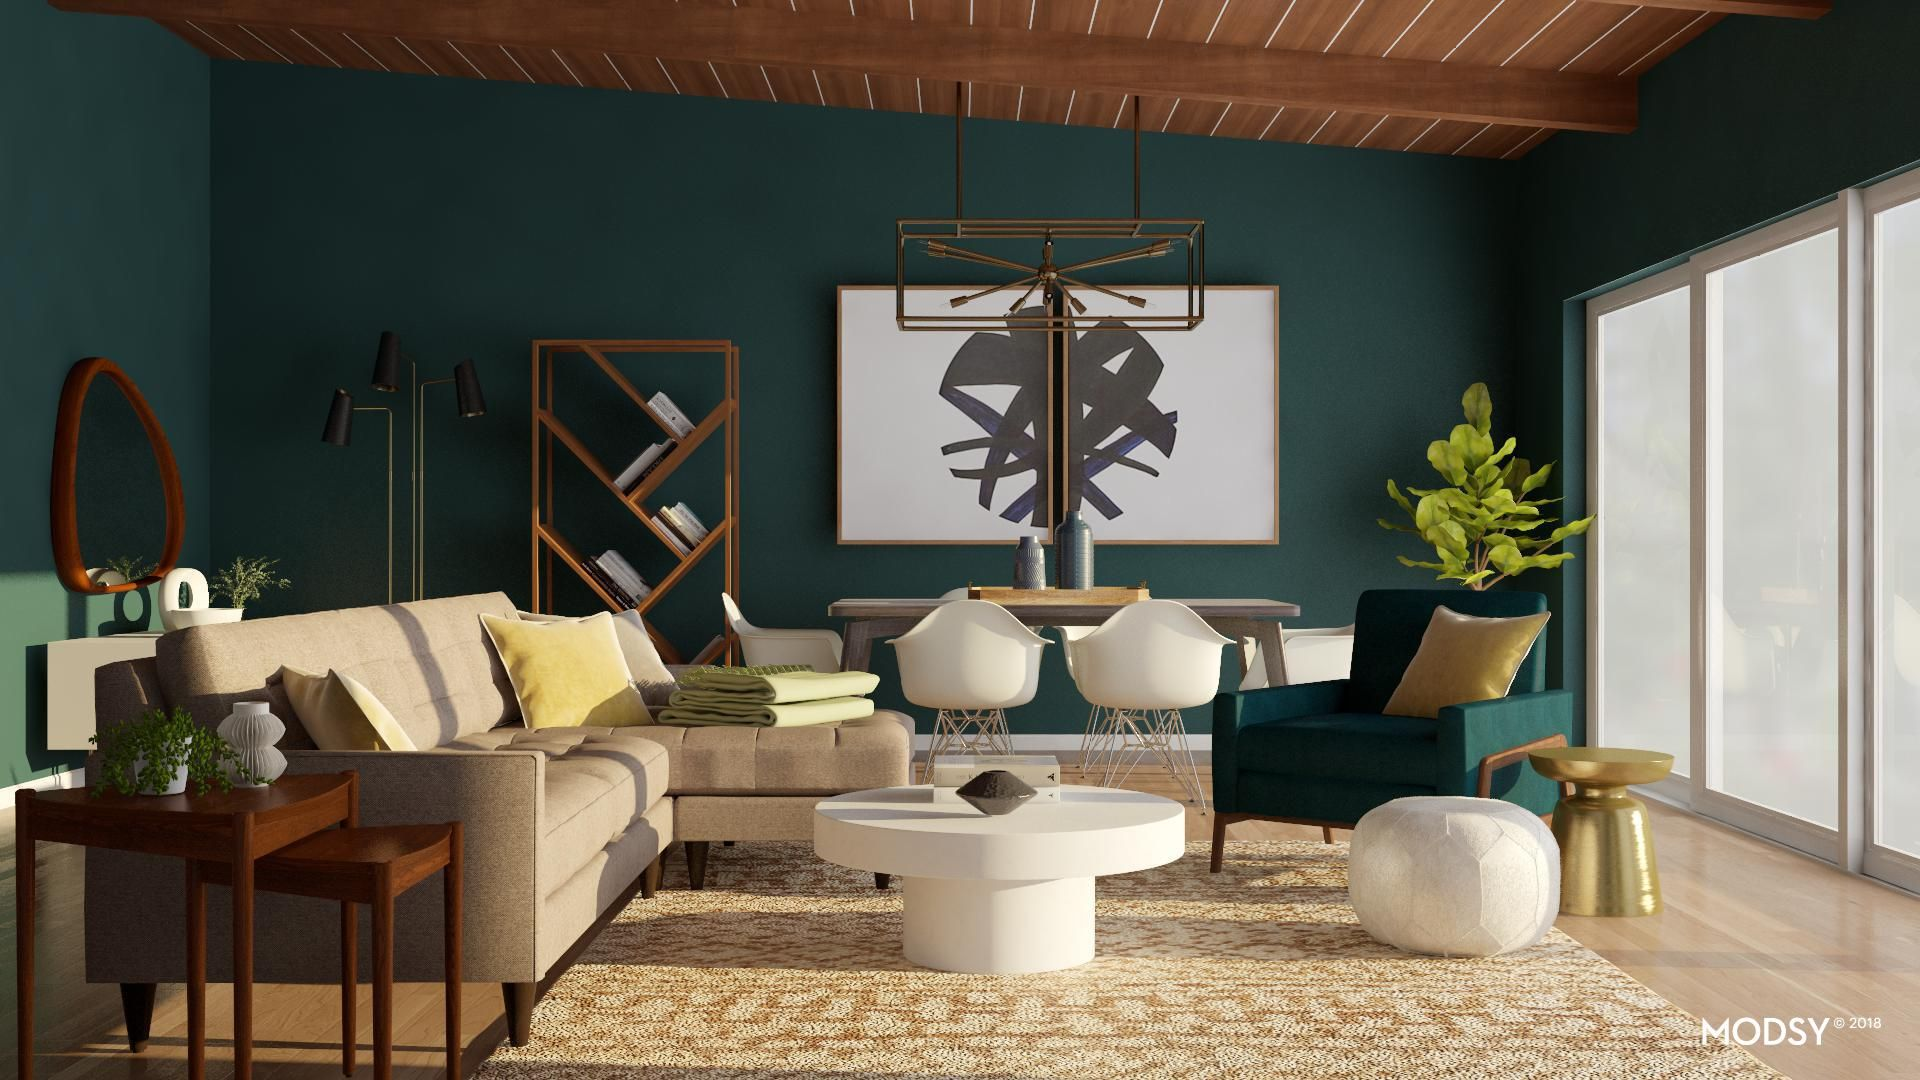 How much green is too much? | Living room design modern, Mid ...